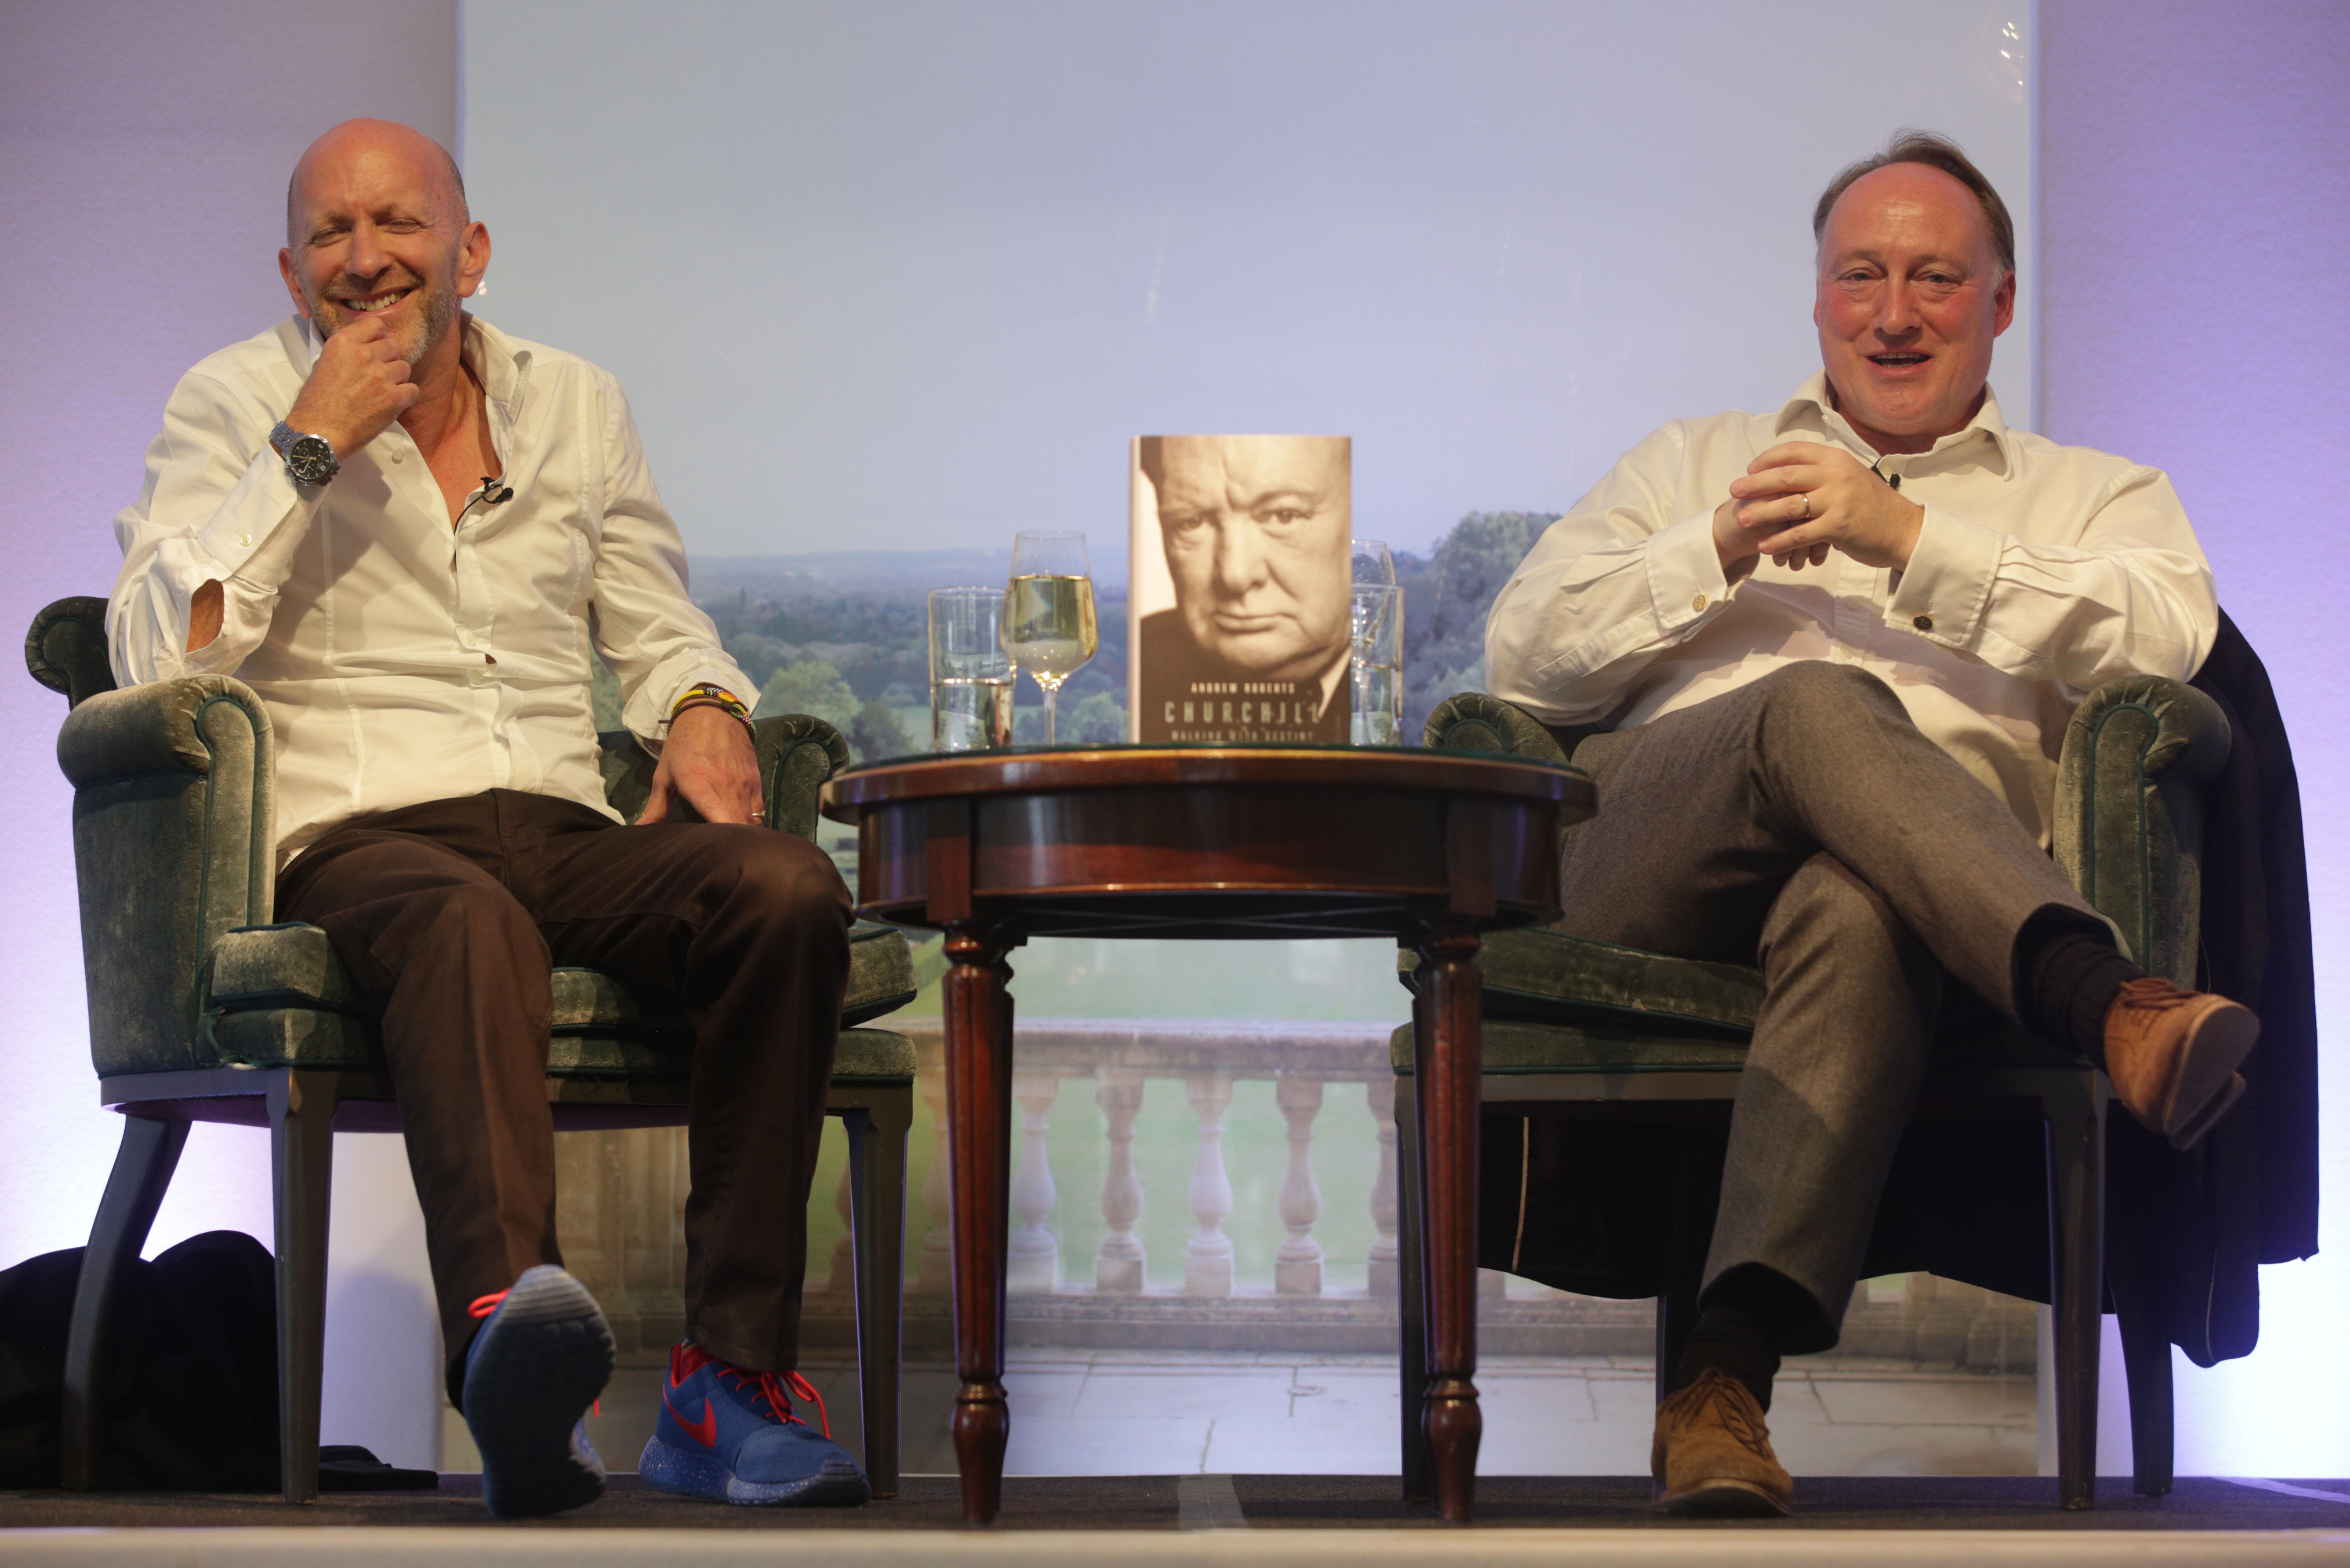 Simon Sebag Montefiore chats to Andrew Roberts about his new book at Cliveden Literary Festival